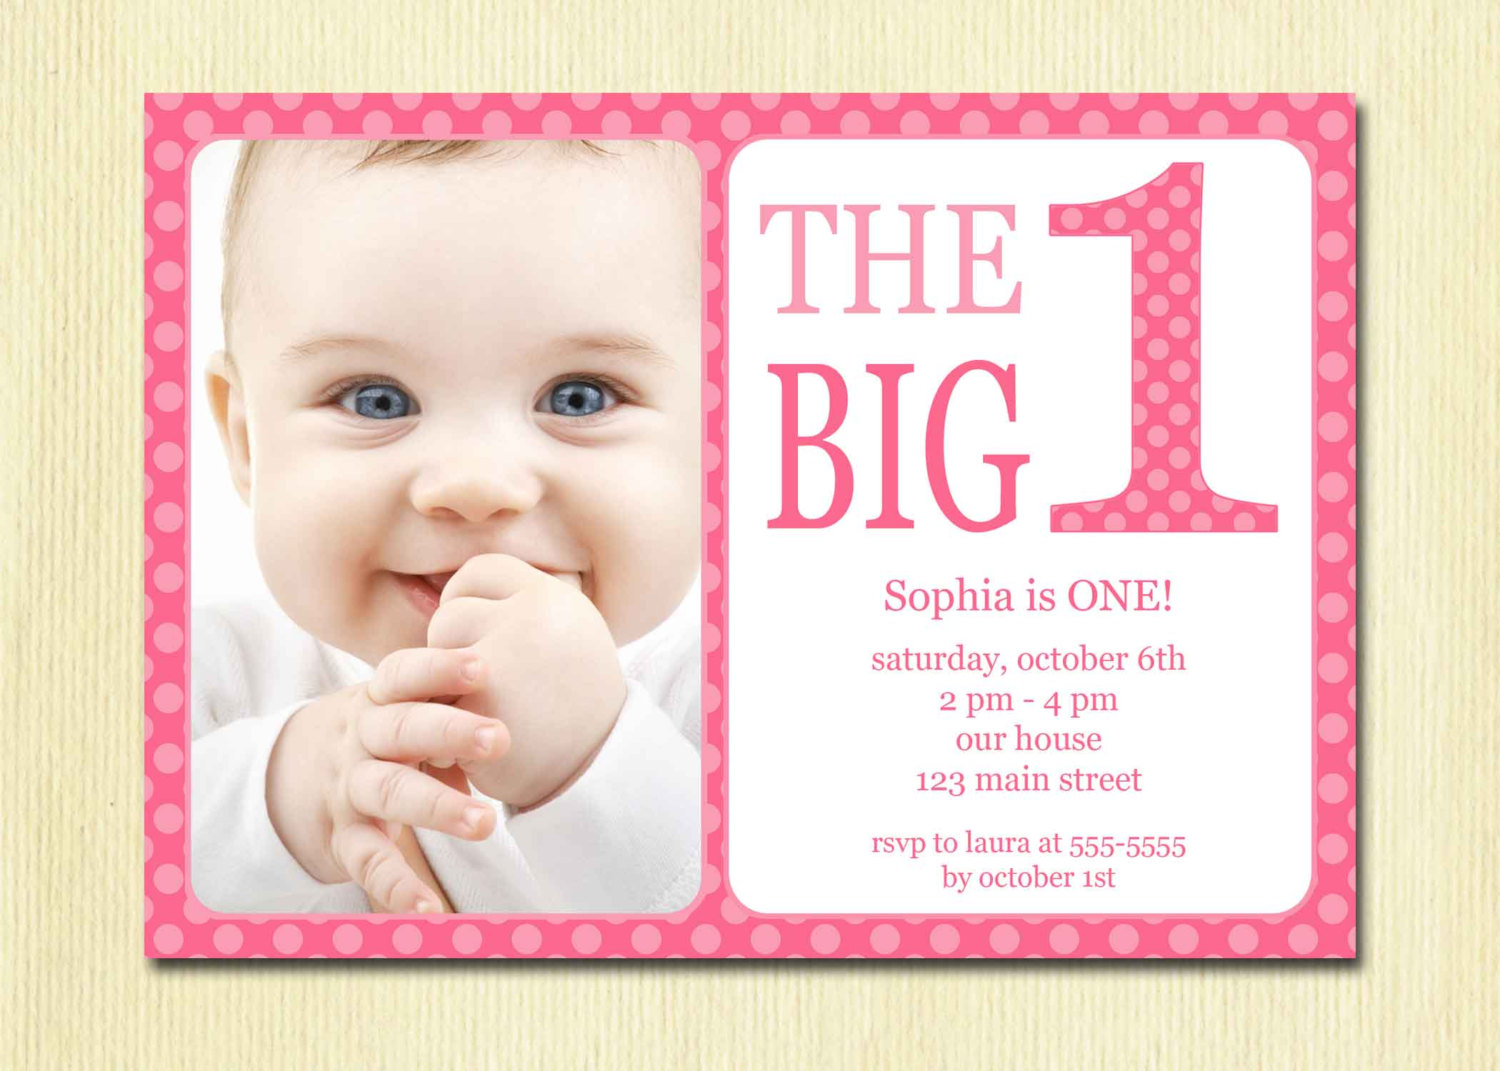 printable baby birthday invitations ; Stunning-1St-Birthday-Invitation-To-Create-Your-Own-Free-Printable-Birthday-Party-Invitations